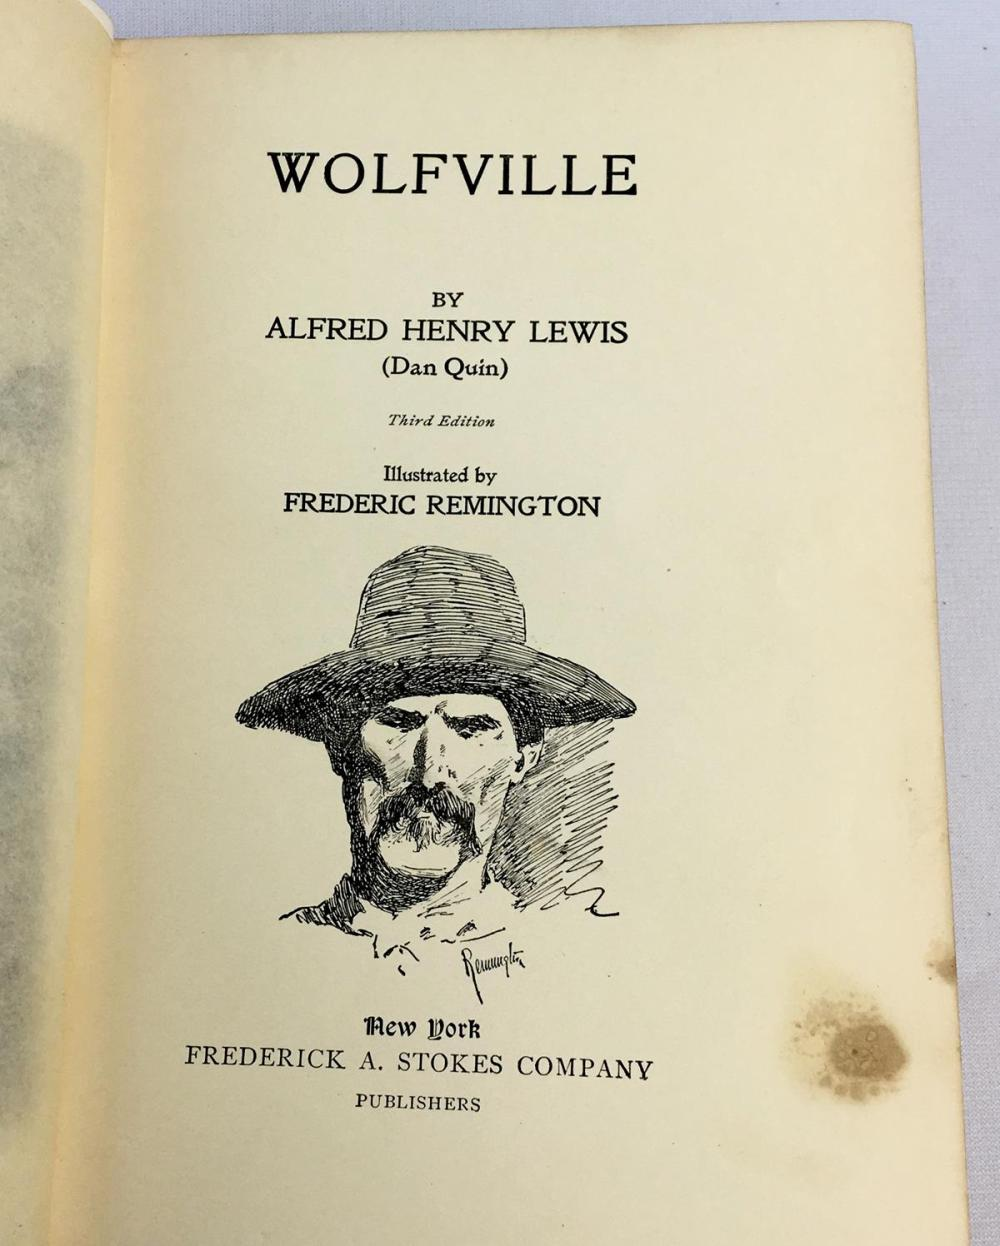 1897 Wolfville by Alfred Henry Lewis (Dan Quin) Illustrated by Frederic Remington